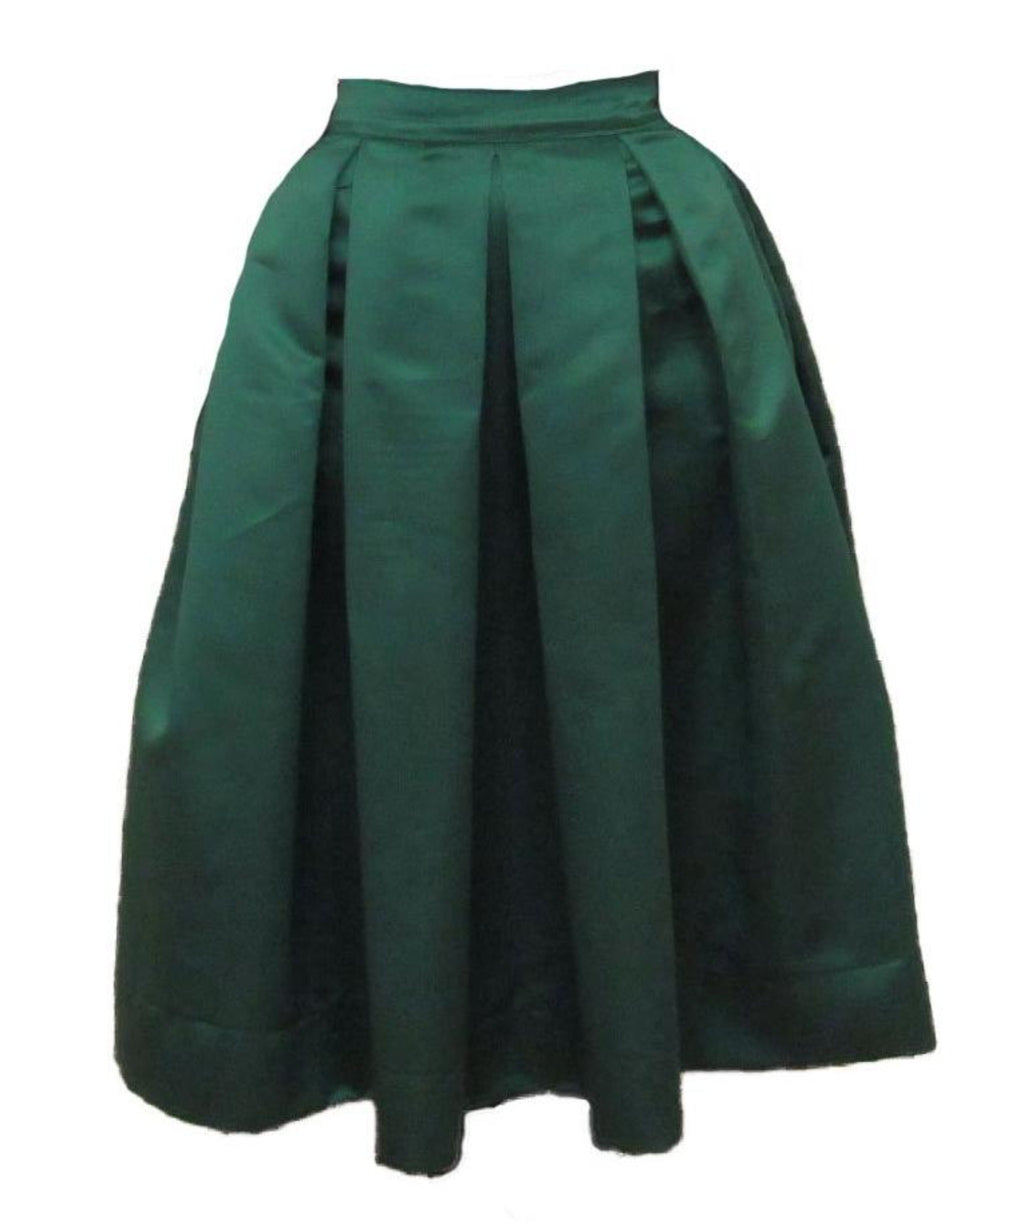 Green Pleated Duchess Satin Skirt